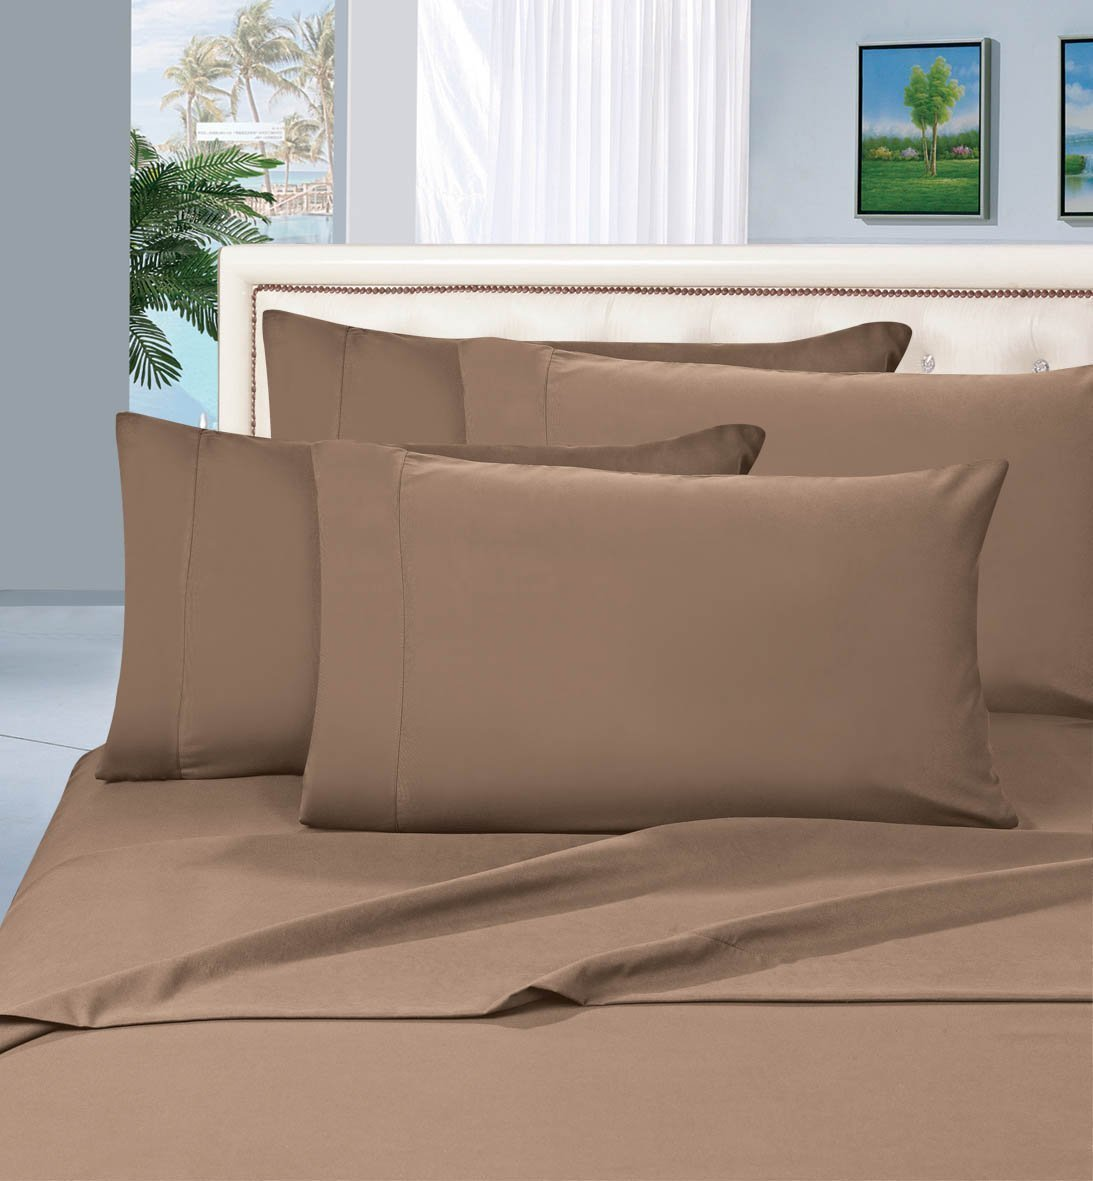 limited time 2pcs pillow cases all sizes and colors king taupe